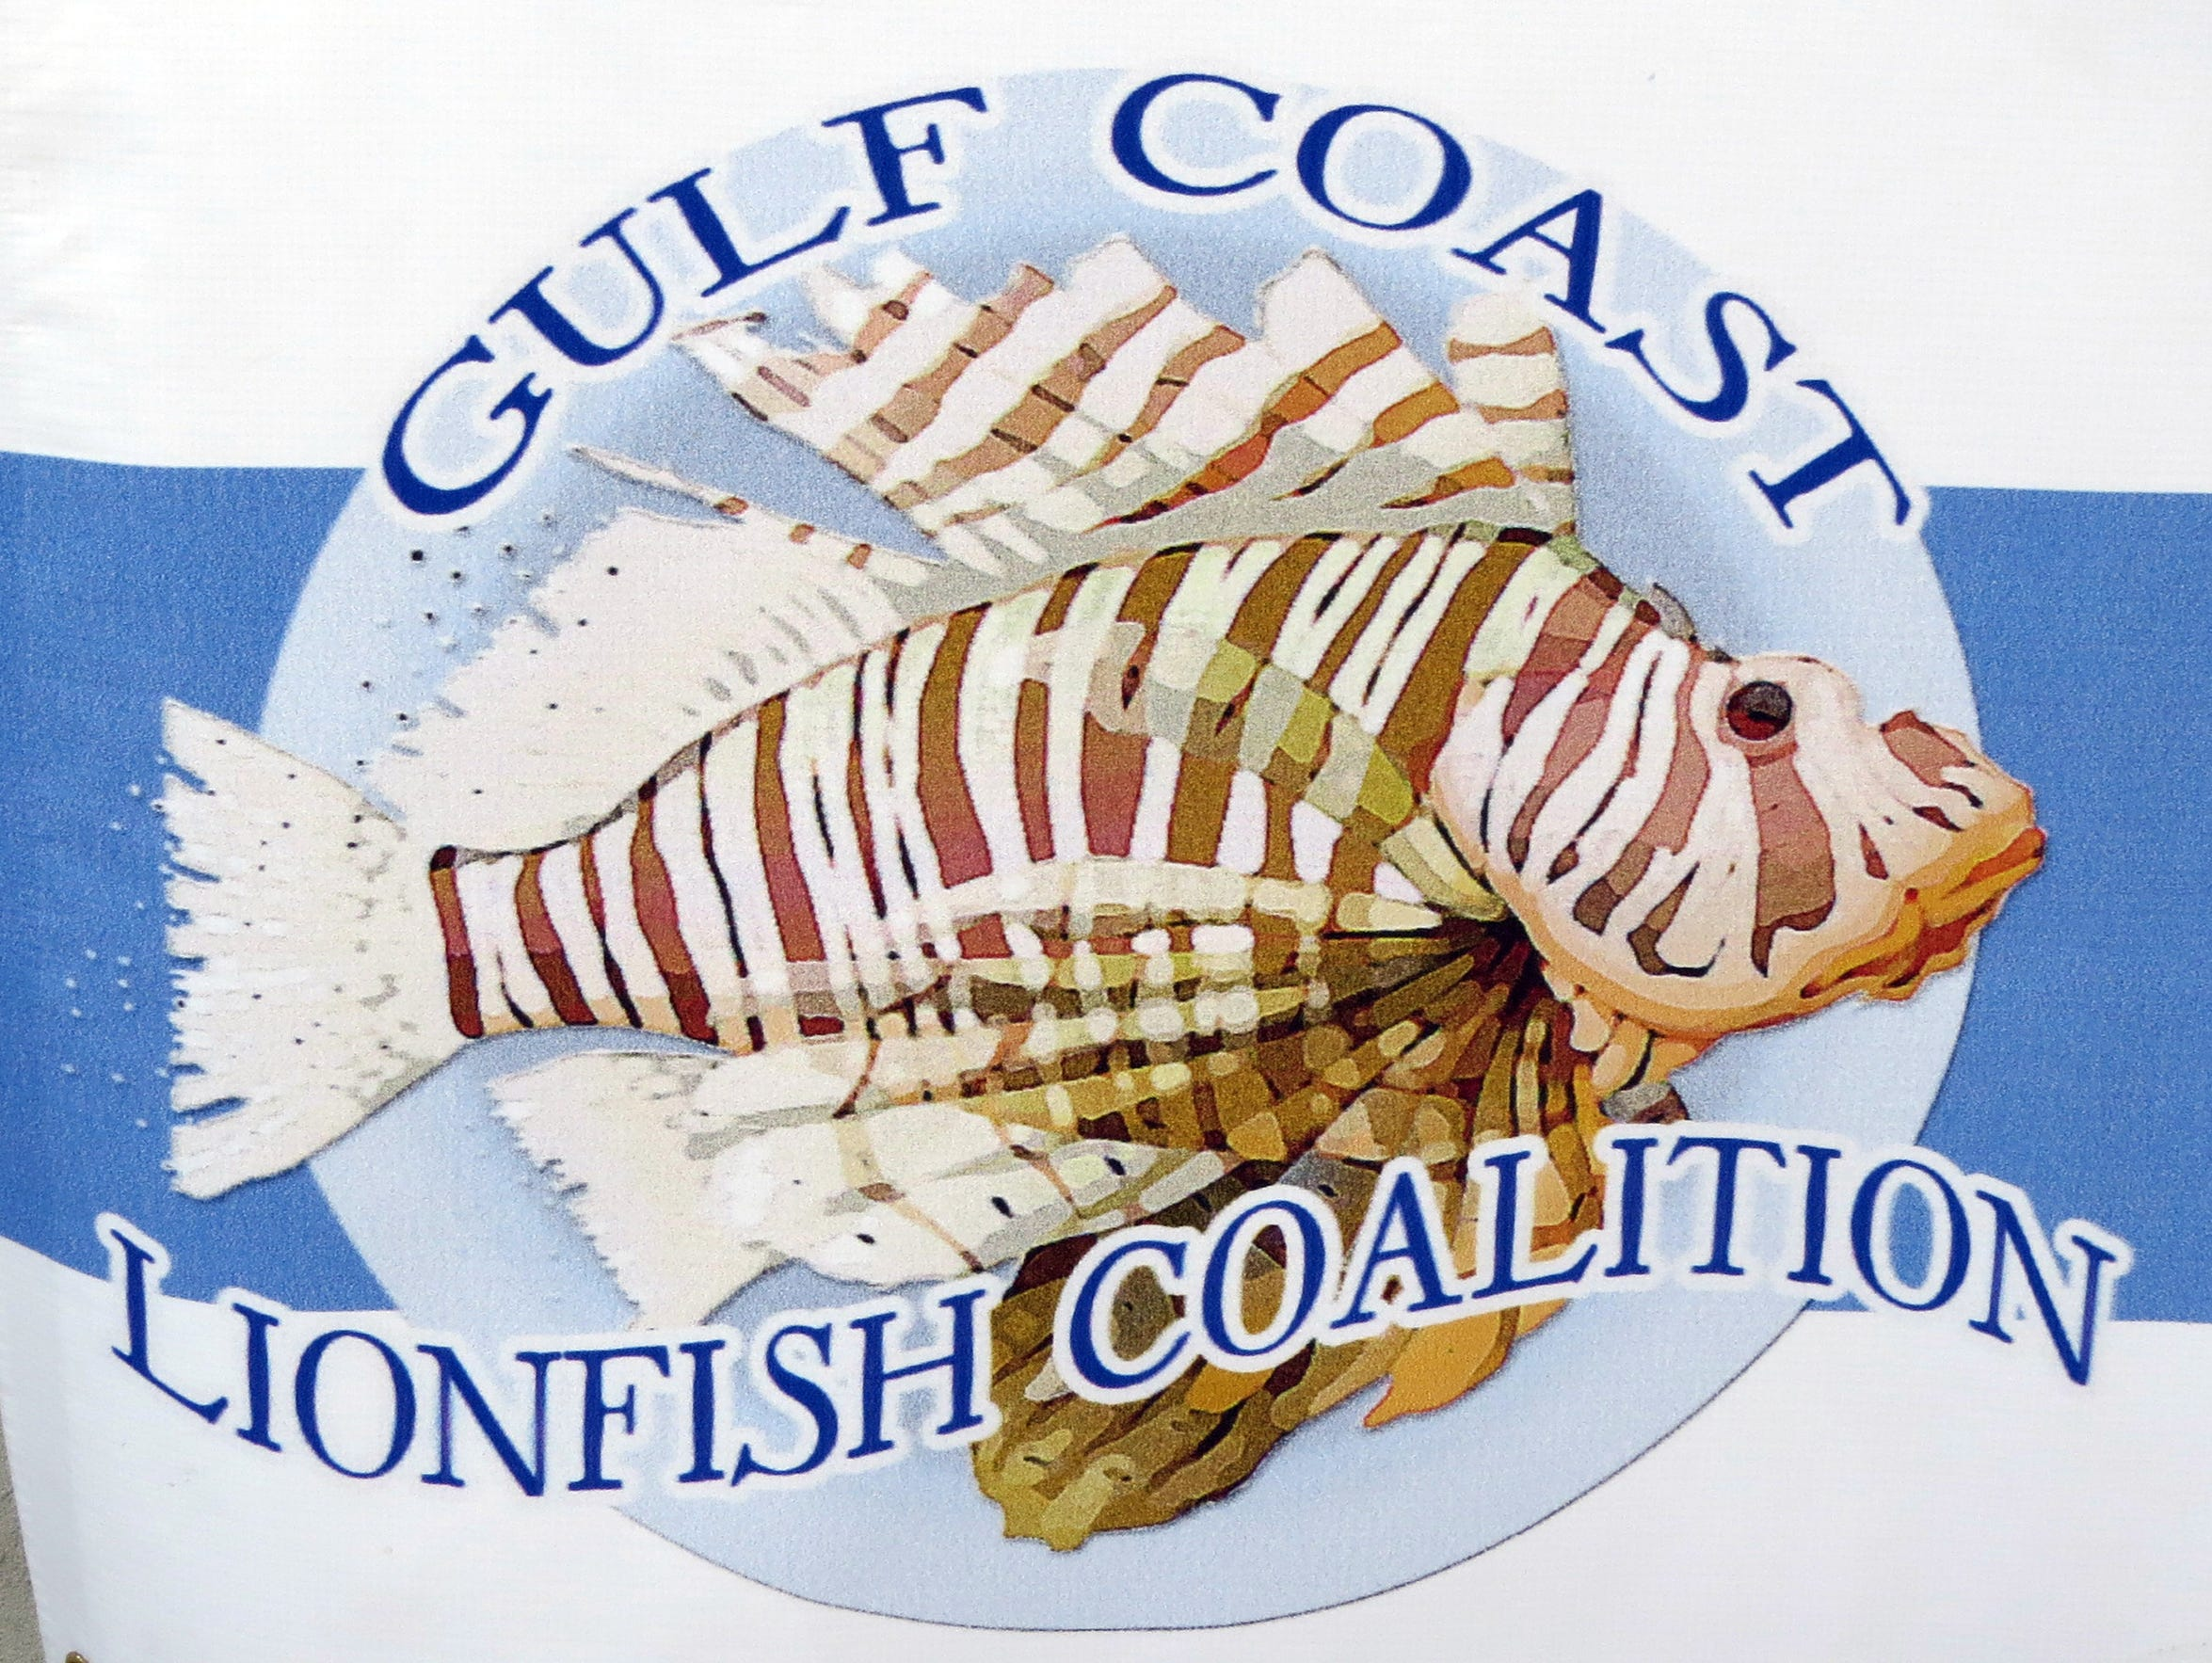 The Gulf Coast Lionfish Coalition has been holding